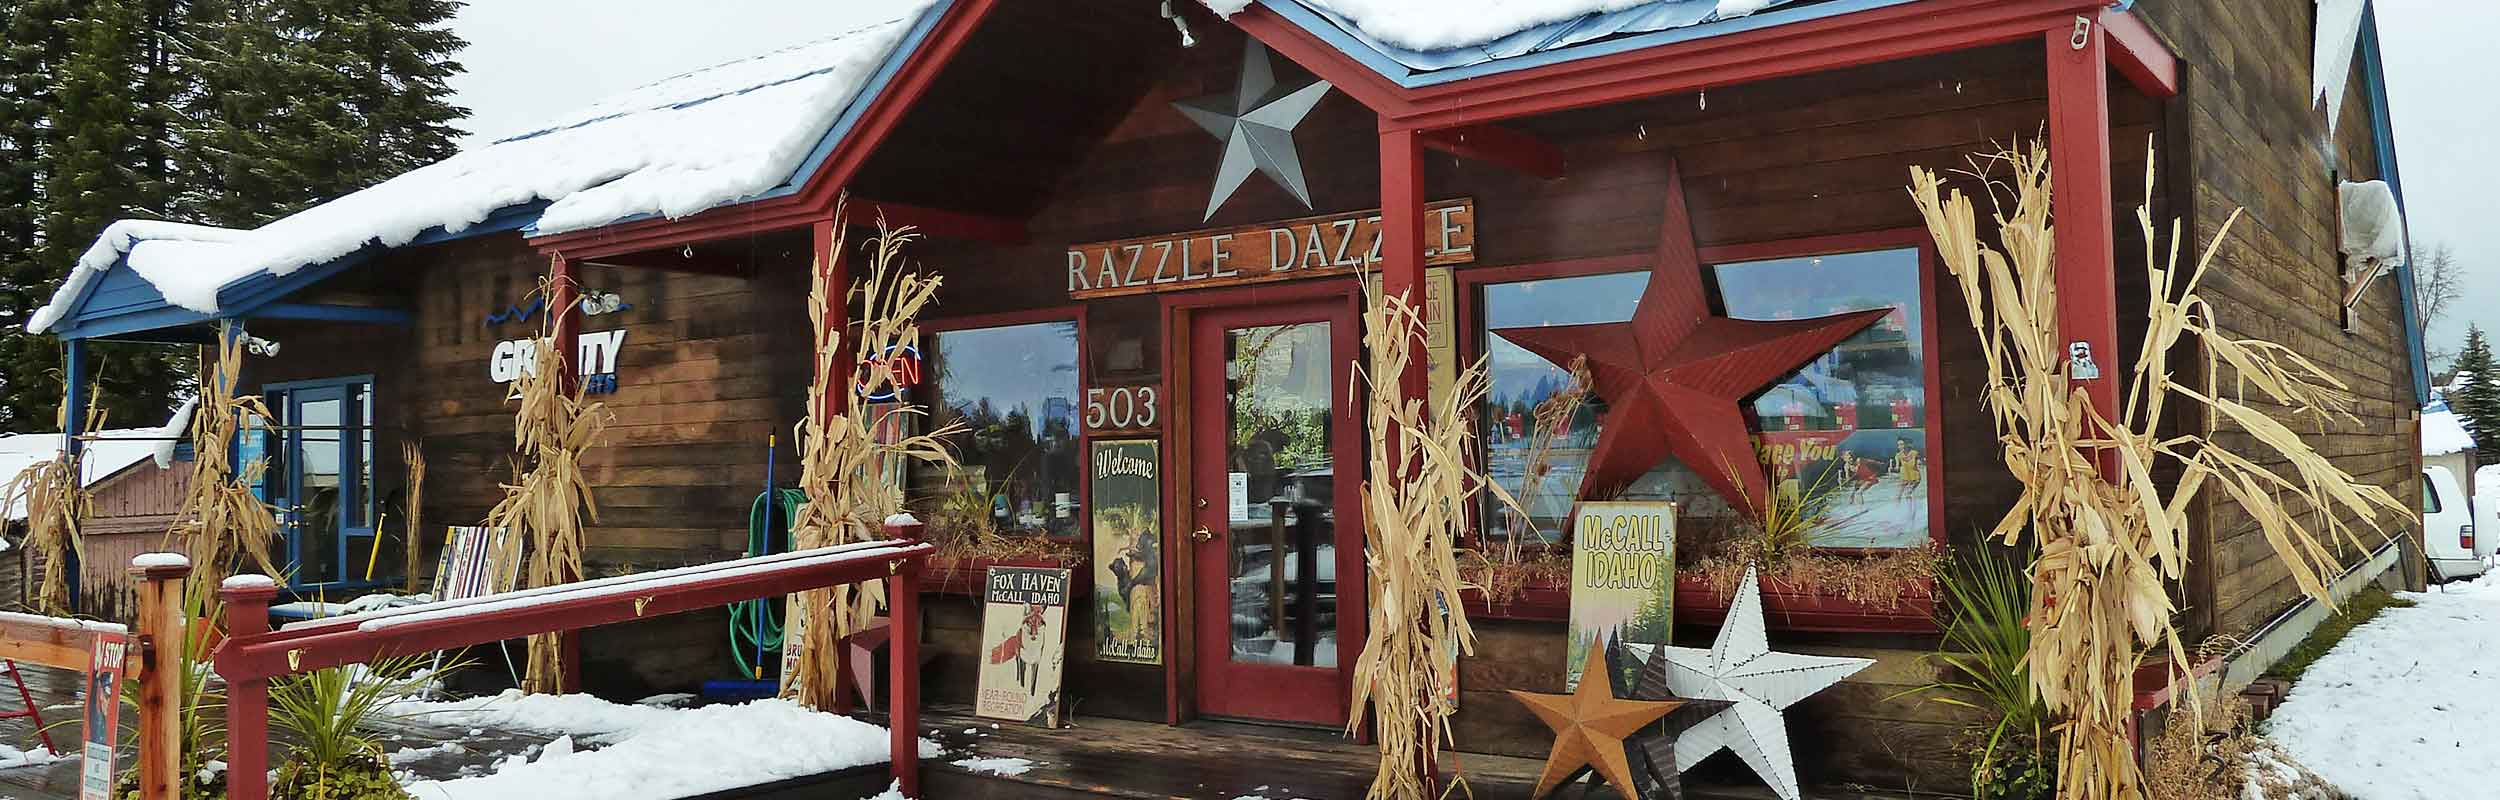 Welcome to Razzle Dazzle in McCall Idaho!